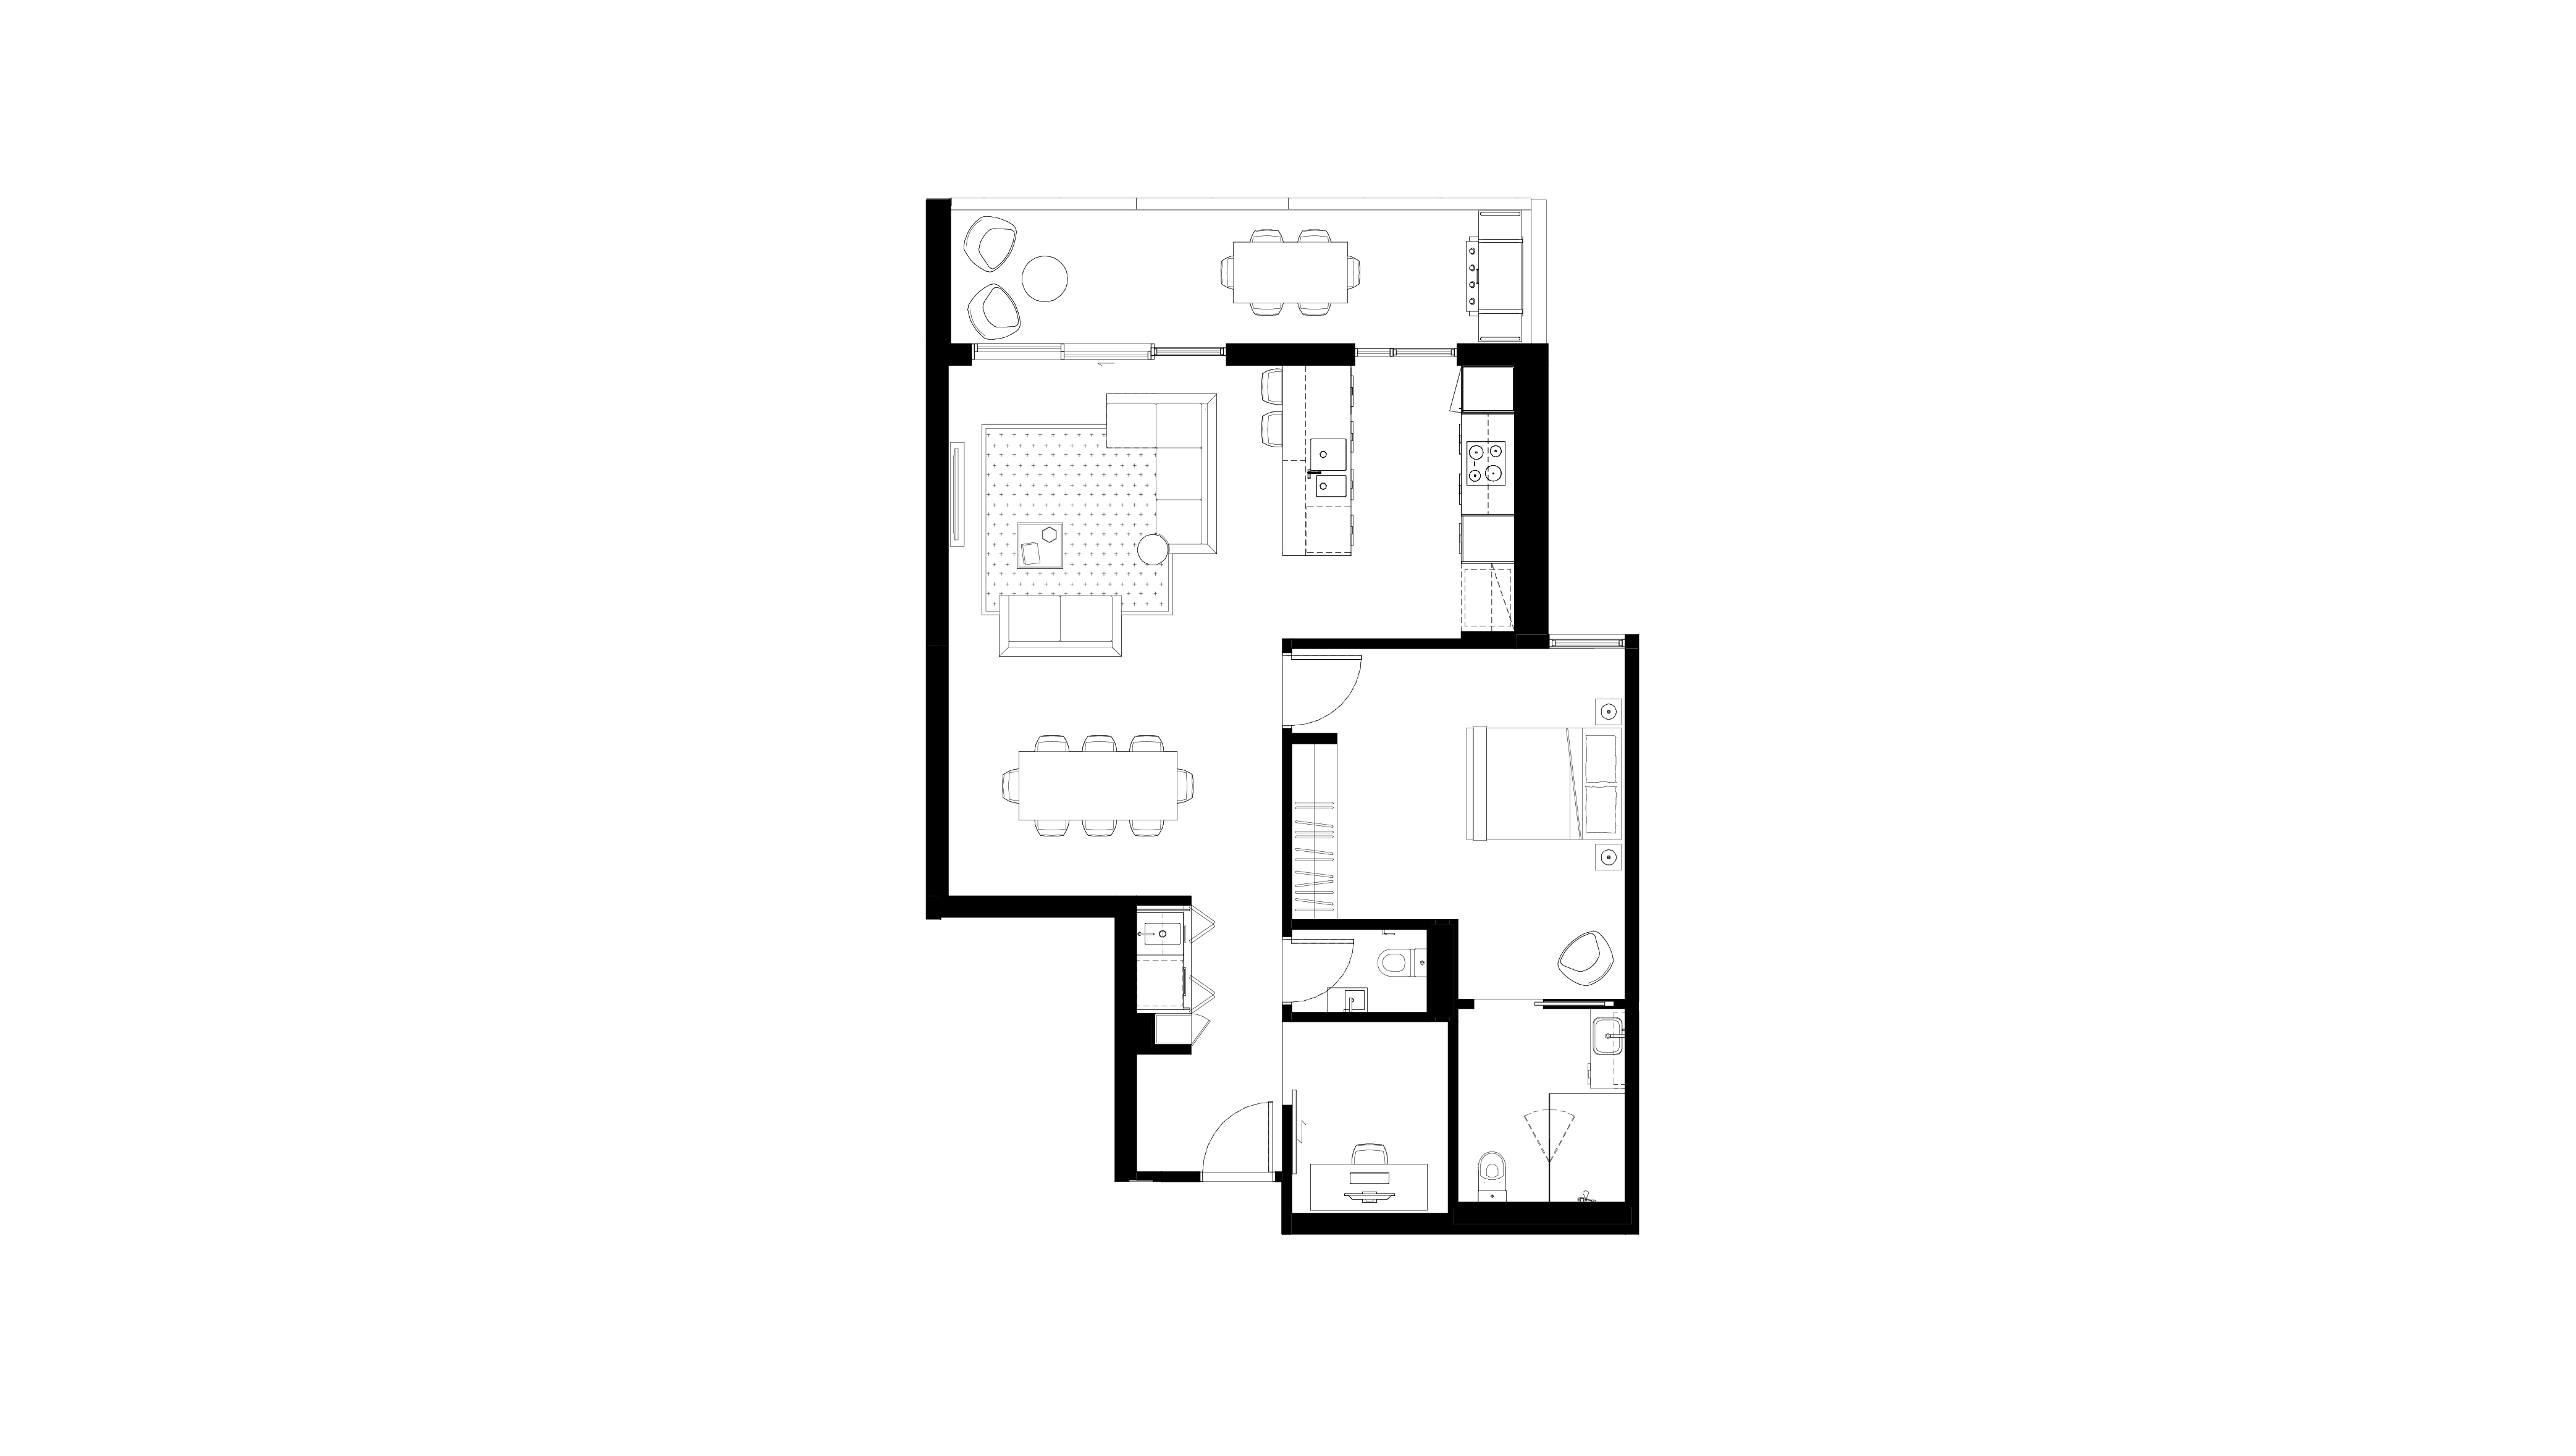 Floor plan of apartment 1.11 at The Orchards, featuring one bedroom, ensuite, powder room and balcony